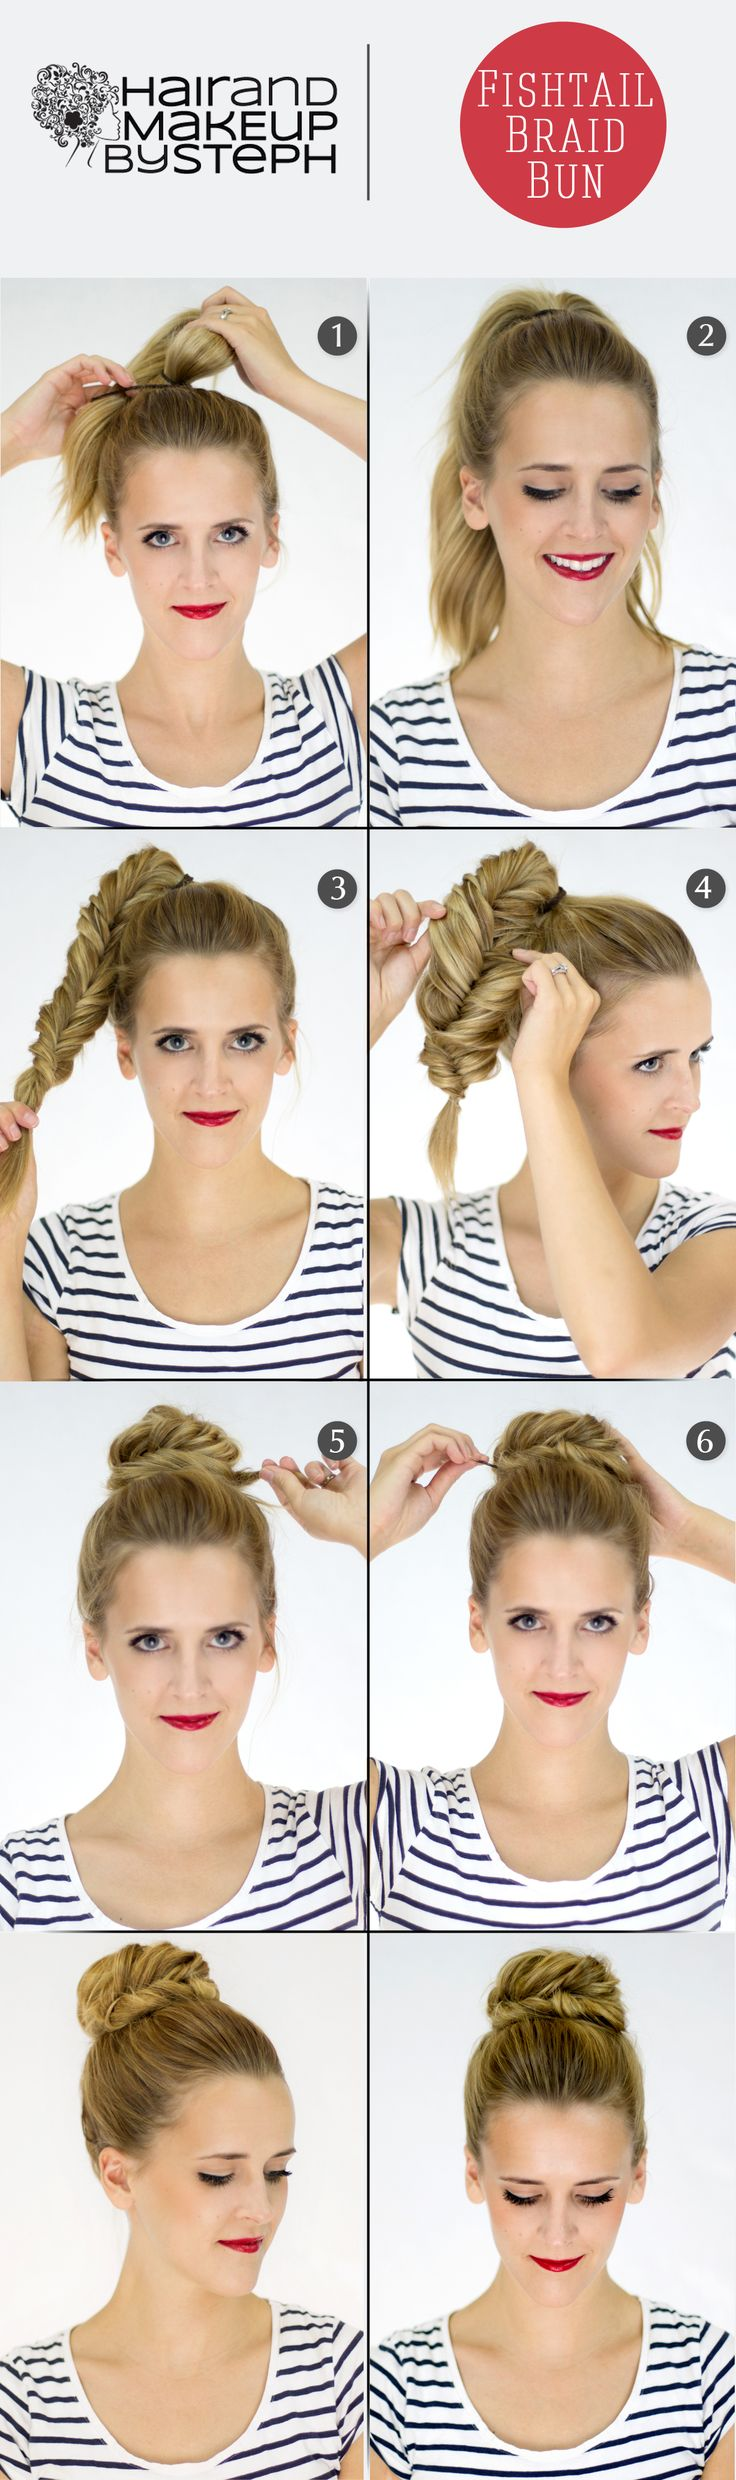 How to:  Fishtail braid bun